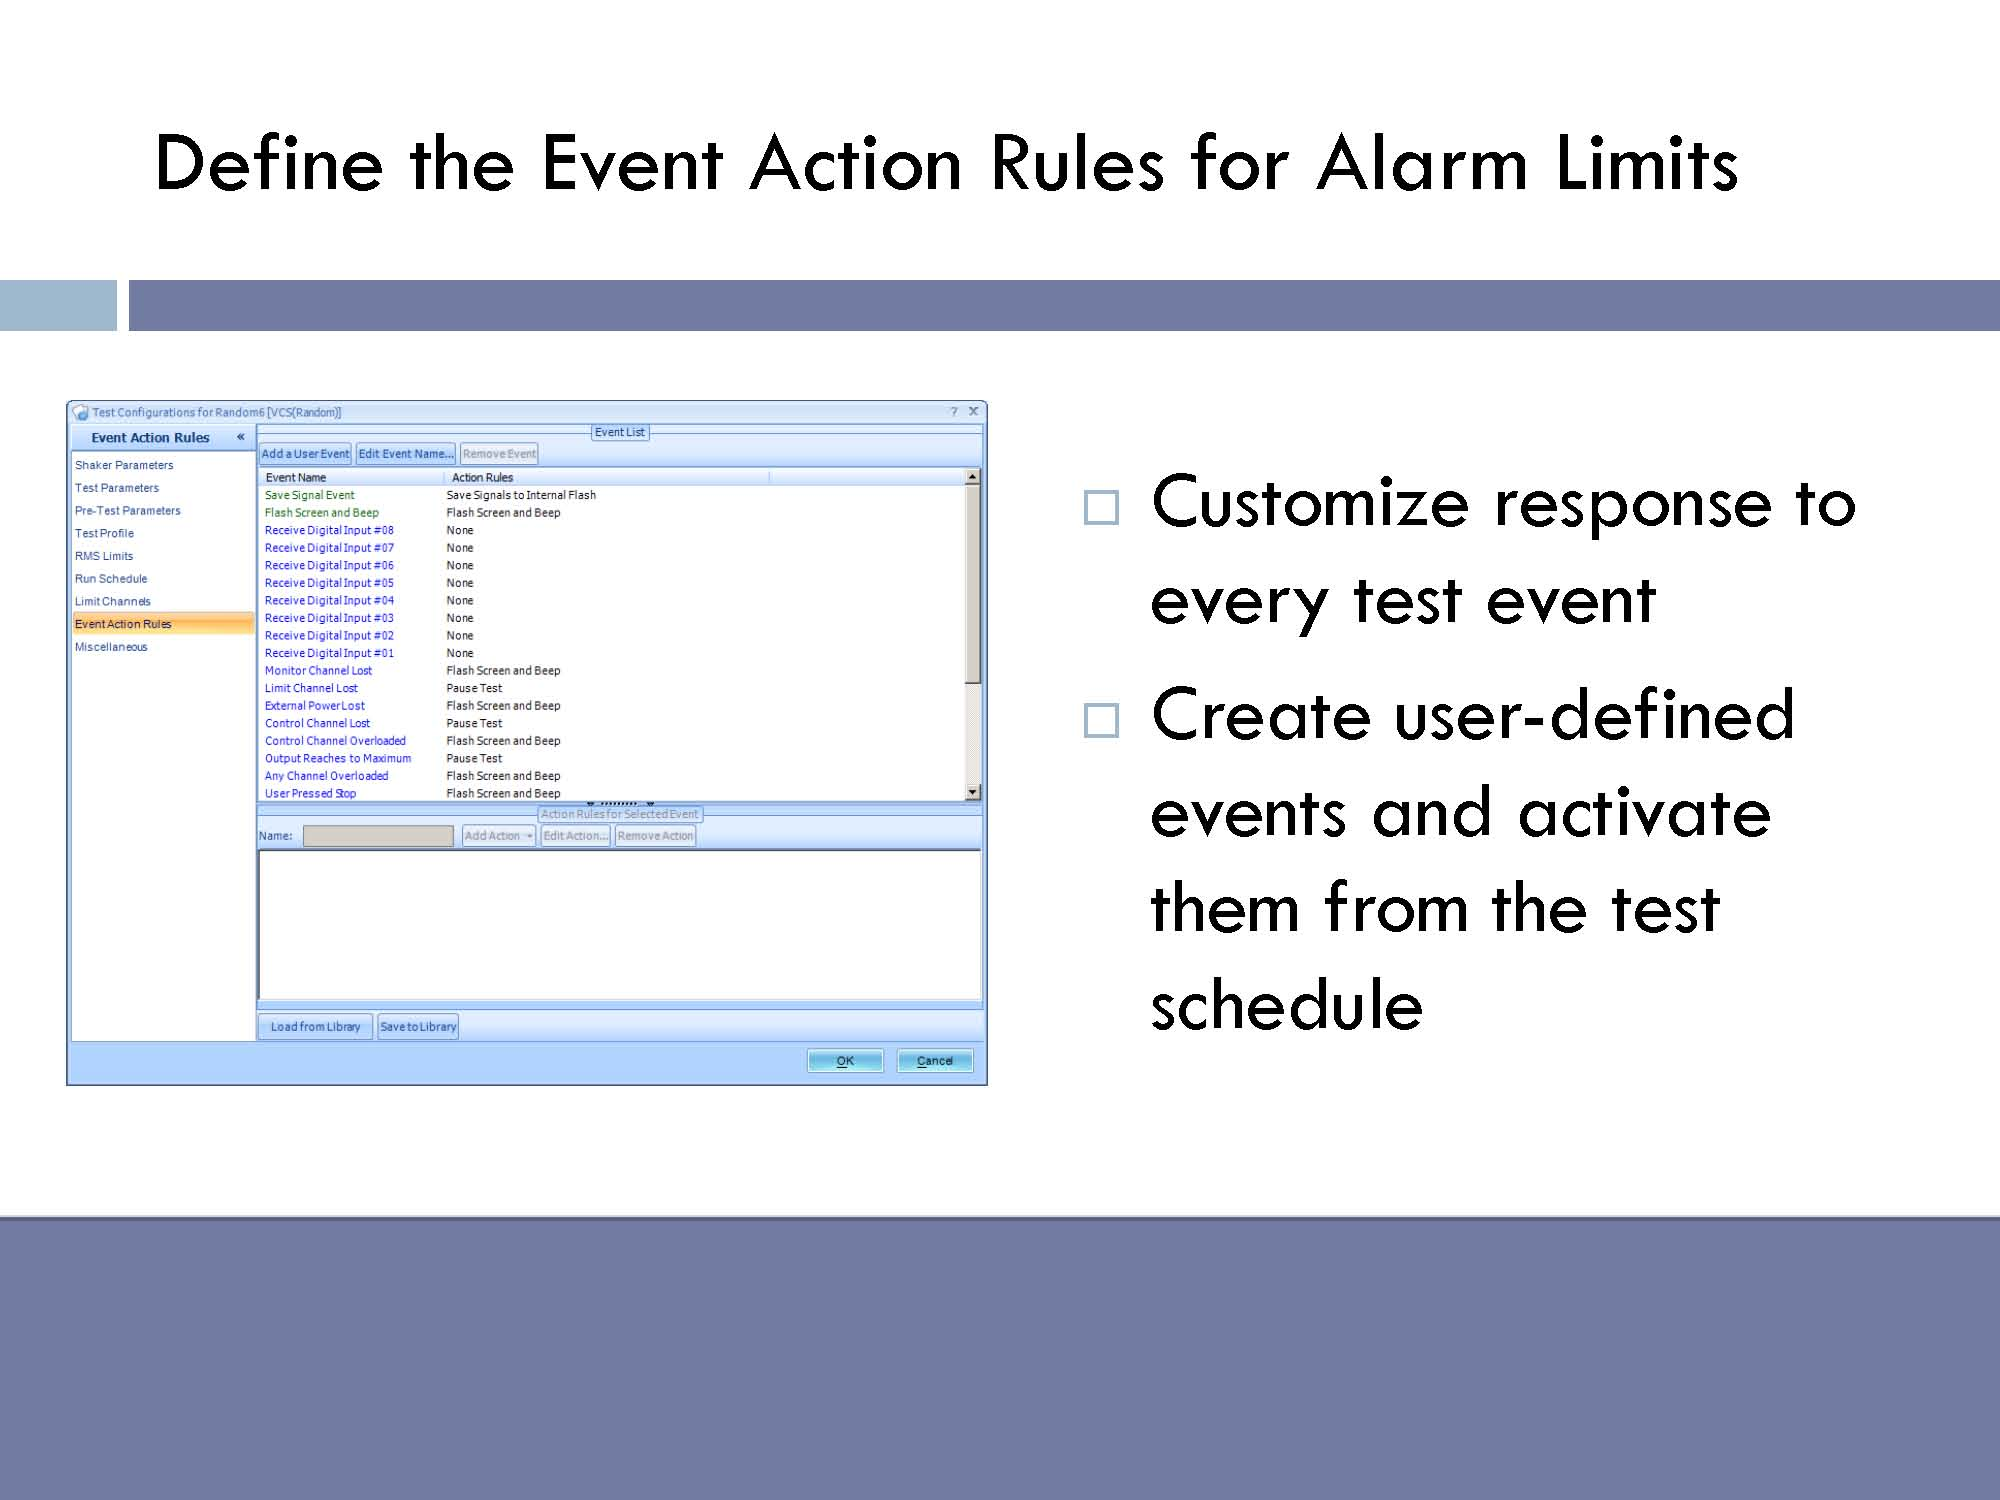 Define the event action rules for alarm limits. Customize response to every test event. Create user-defined events and activate them from the test schedule.